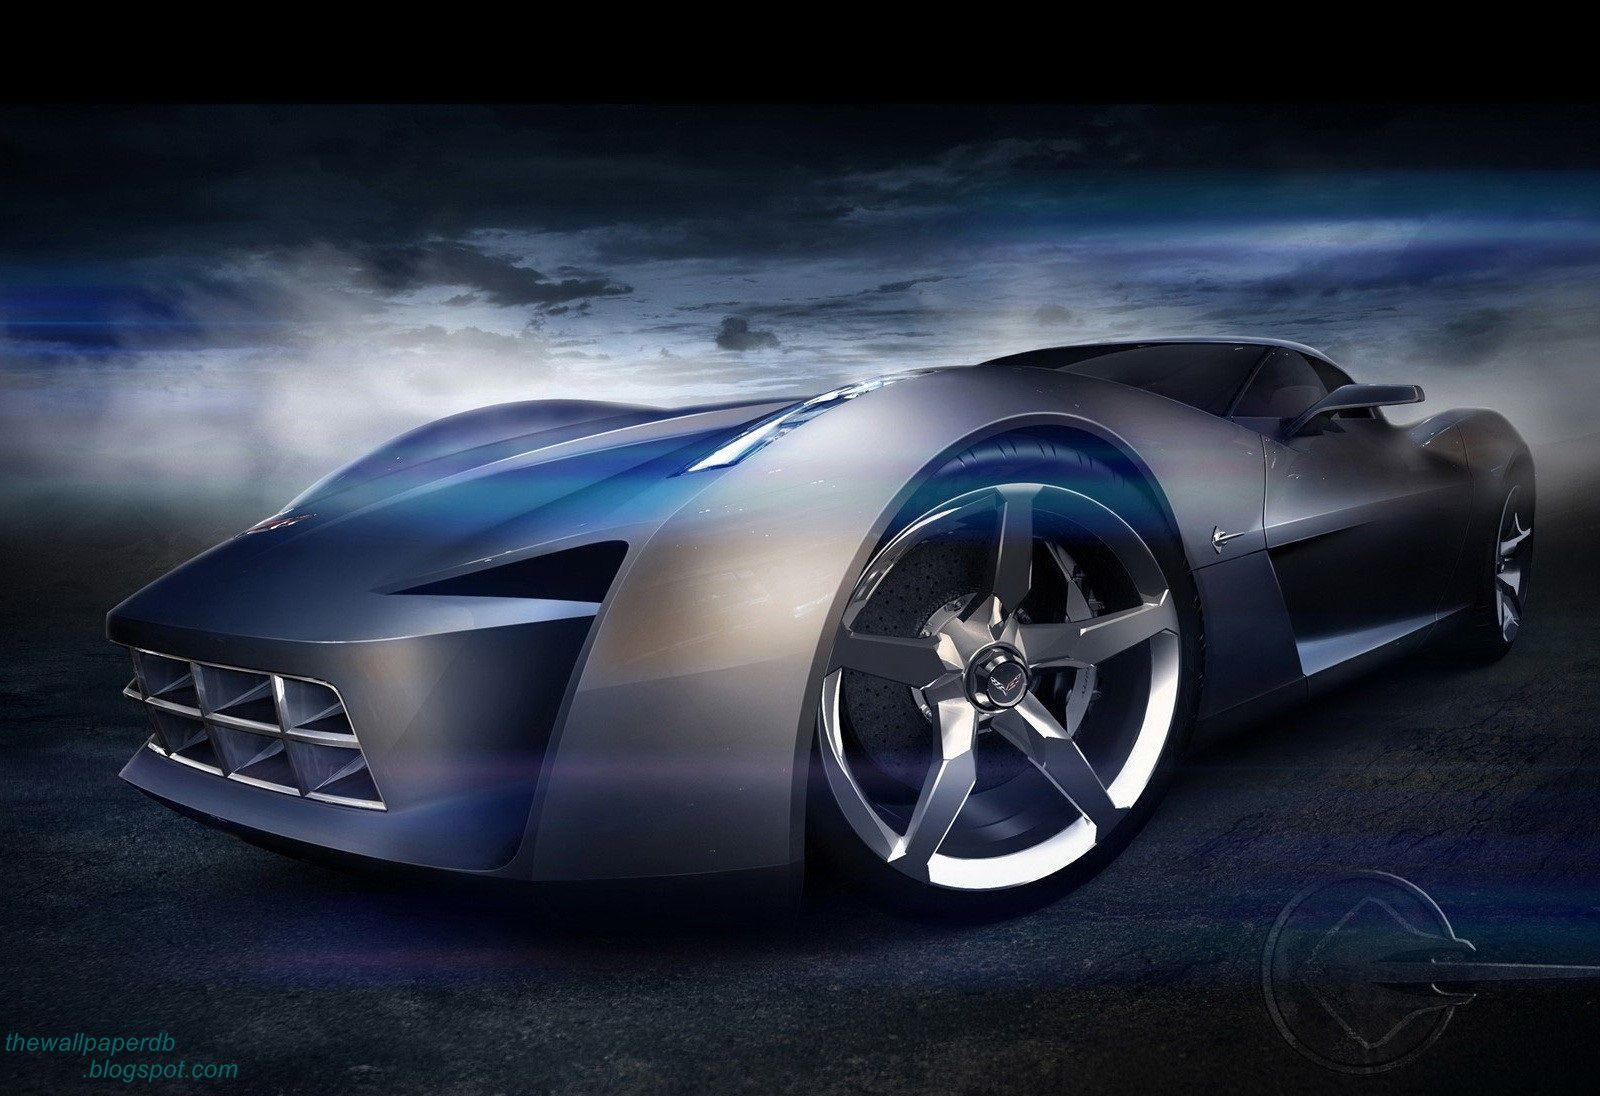 supercar wallpapers download supercar wallpapers download 1600x1096